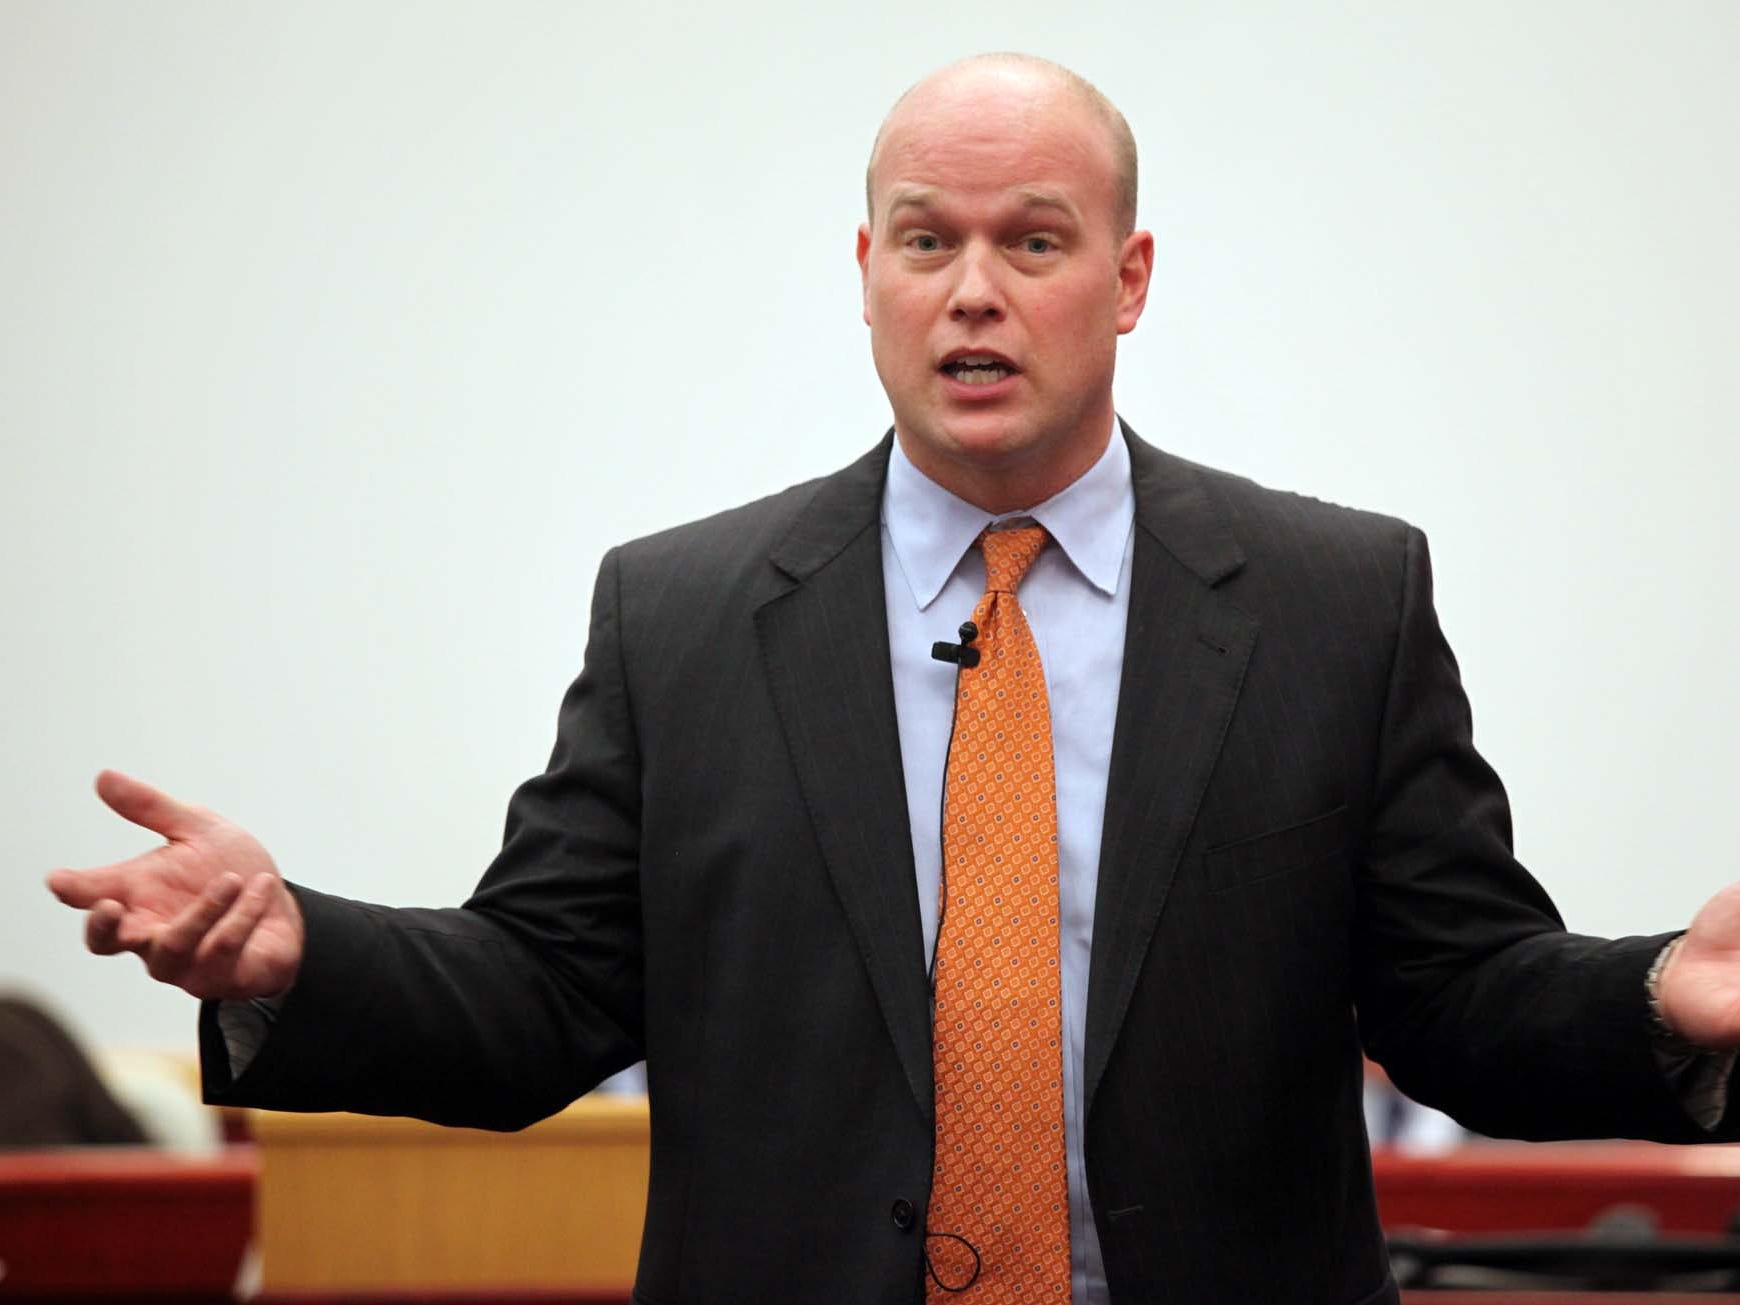 From February 2011: Defense attorney Matt Whitaker makes his opening statement during the trial of Wendy Weiner Runge on the campus of Drake University in Des Moines.